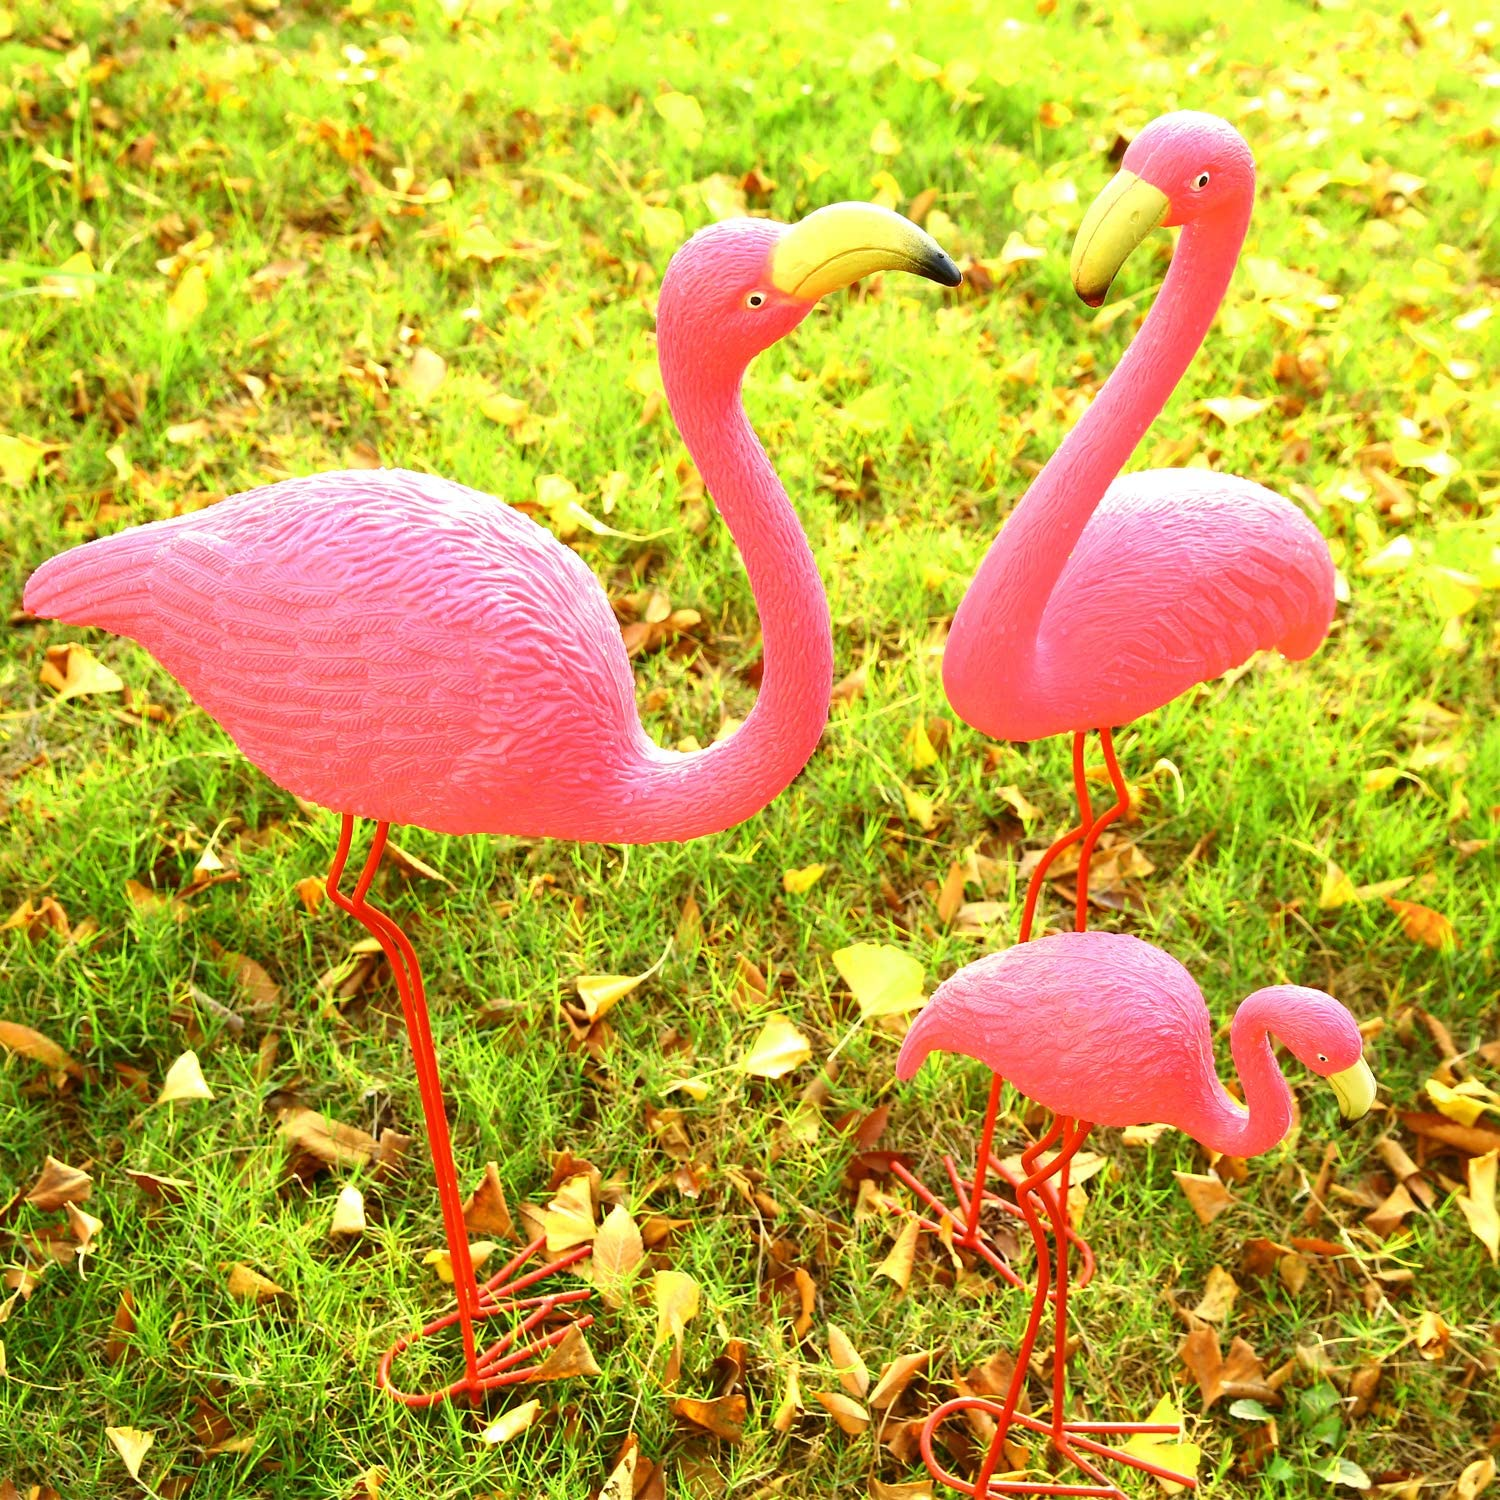 "Ohuhu Family Flamingo Yard Ornaments, Set of 3 (32"", 31"", 19"") Bright Pink Flamingos Family with Metal Feet Stakes for Garden/Yard/Patio Decoration, Great Christmas Decor Outdoor Gift Present Idea : Garden & Outdoor"